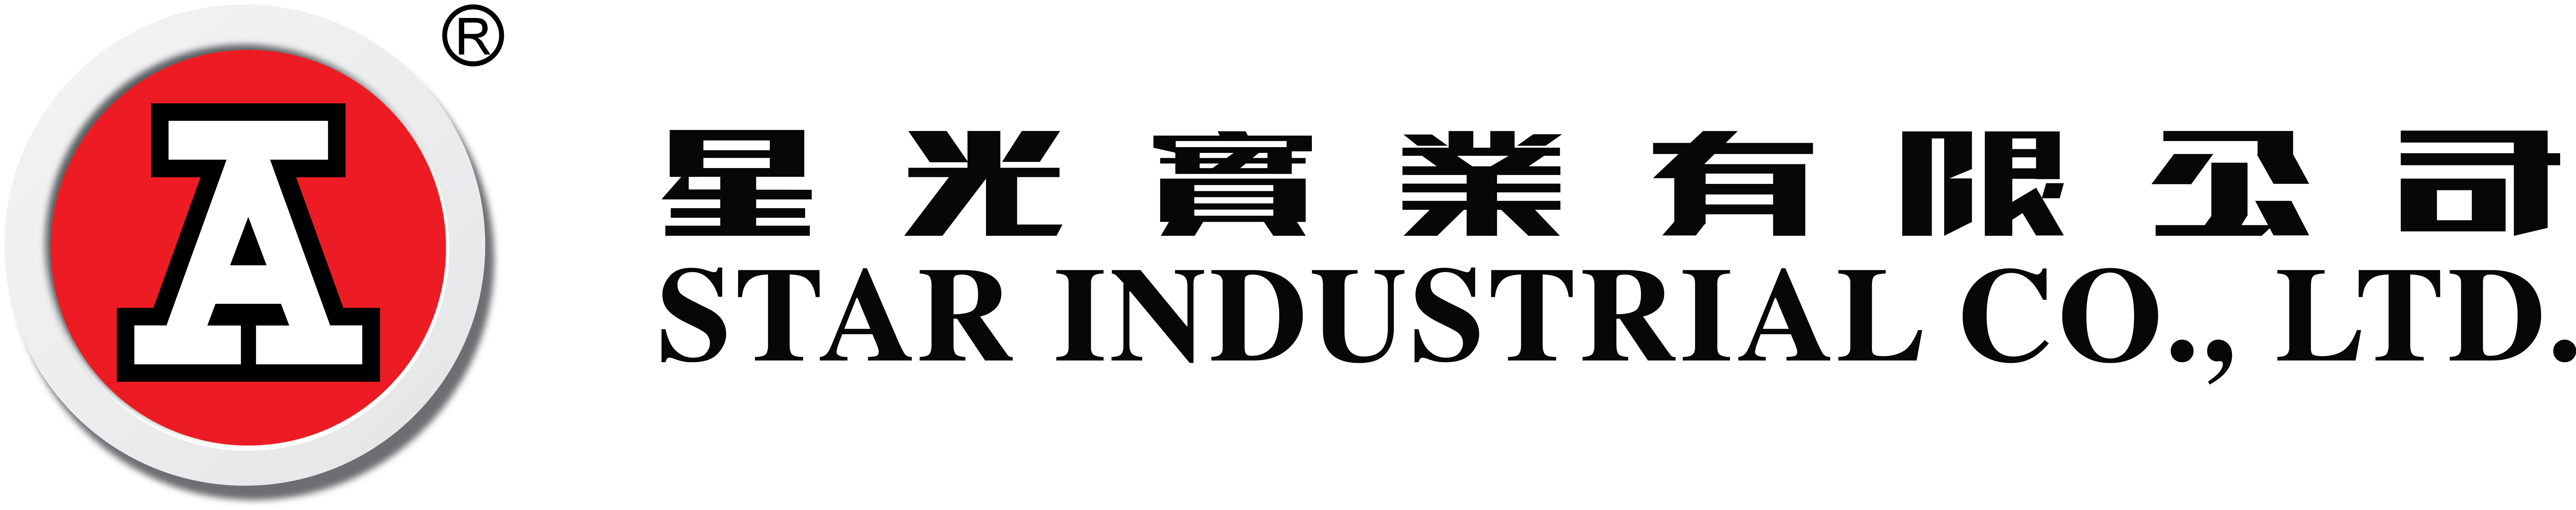 Star Industrial New Logo mtime20200310071557